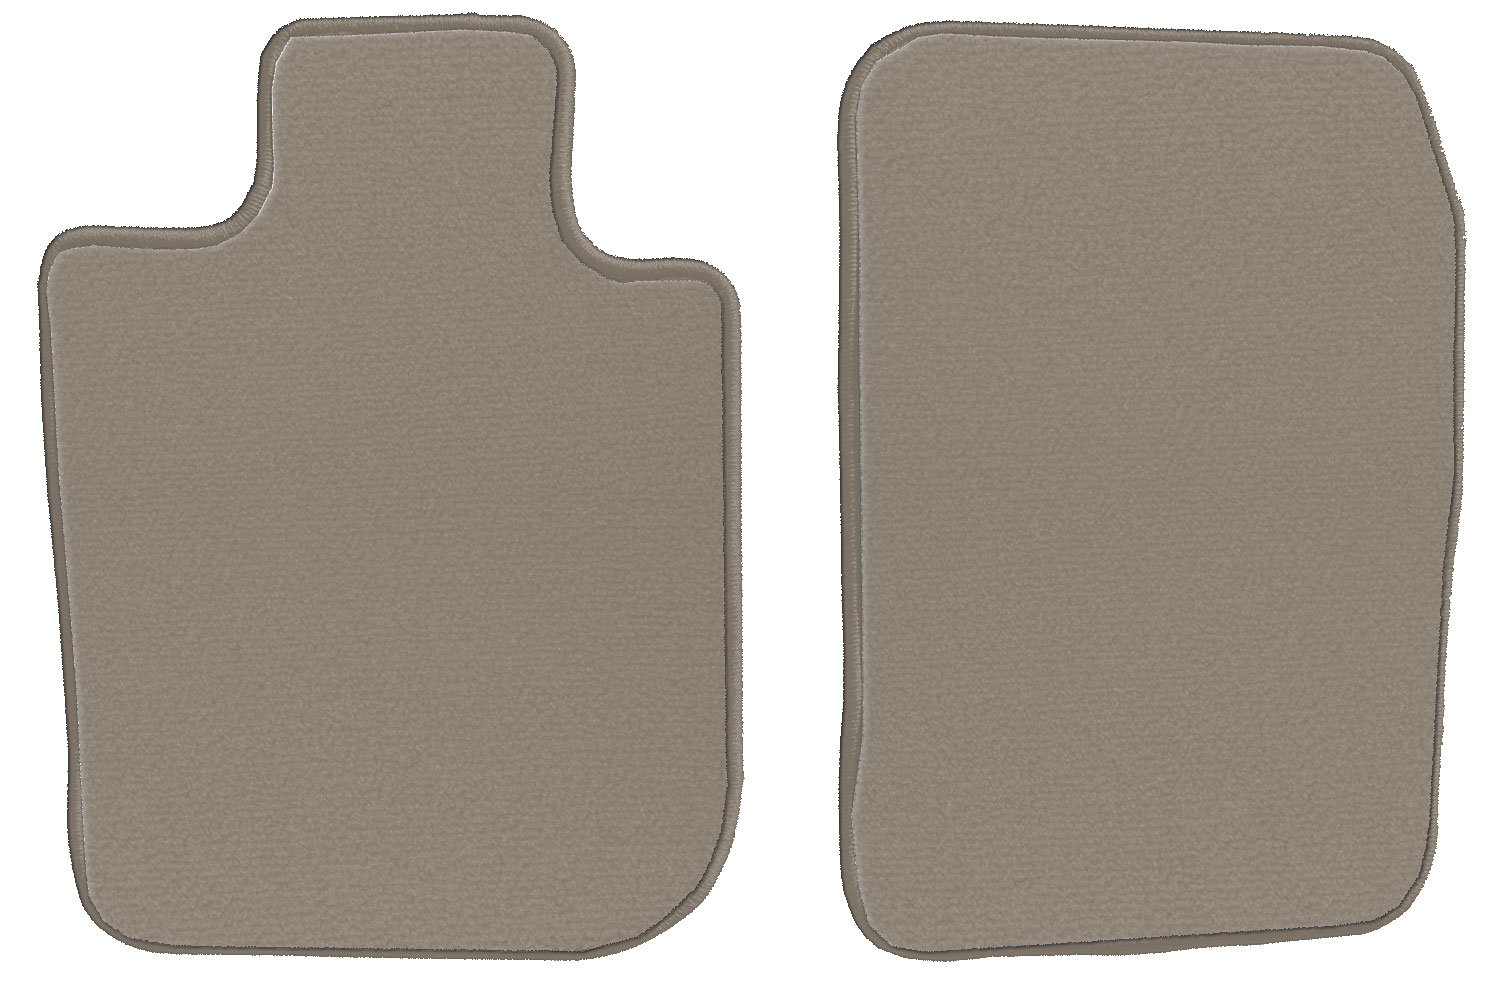 GGBAILEY D3330A-F1A-BG-LP Custom Fit Car Mats for 1999 2002 2005 Ford F-350 SuperDuty 2 Door//Regular Cab Beige Loop Driver /& Passenger Floor 2001 2003 2004 2000